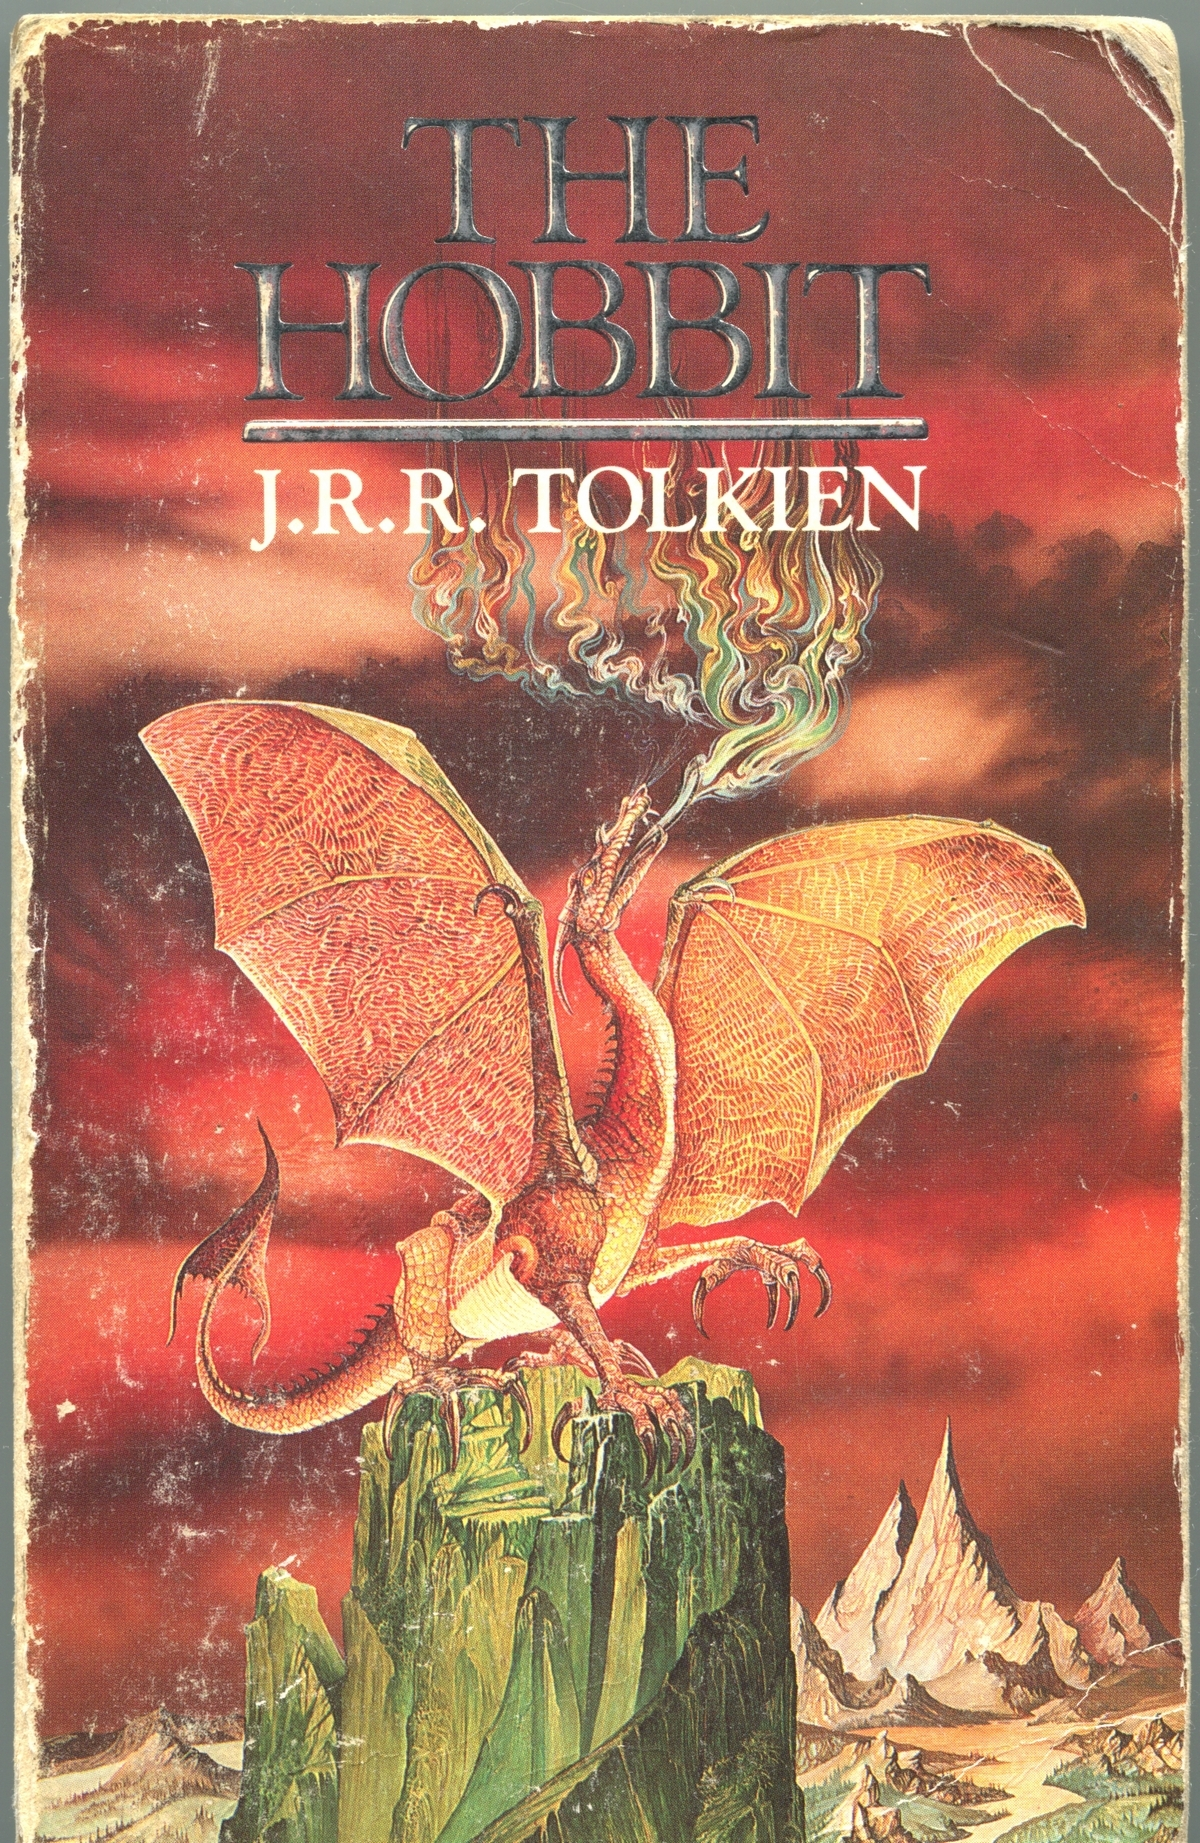 the plot summary of the hobbit a fantasy novel by j r r tolkien Books by jrr tolkien books and tolkien and fantasy online courses at cardiff metropolitan university all members of the tolkien society are entitled to a 15%.